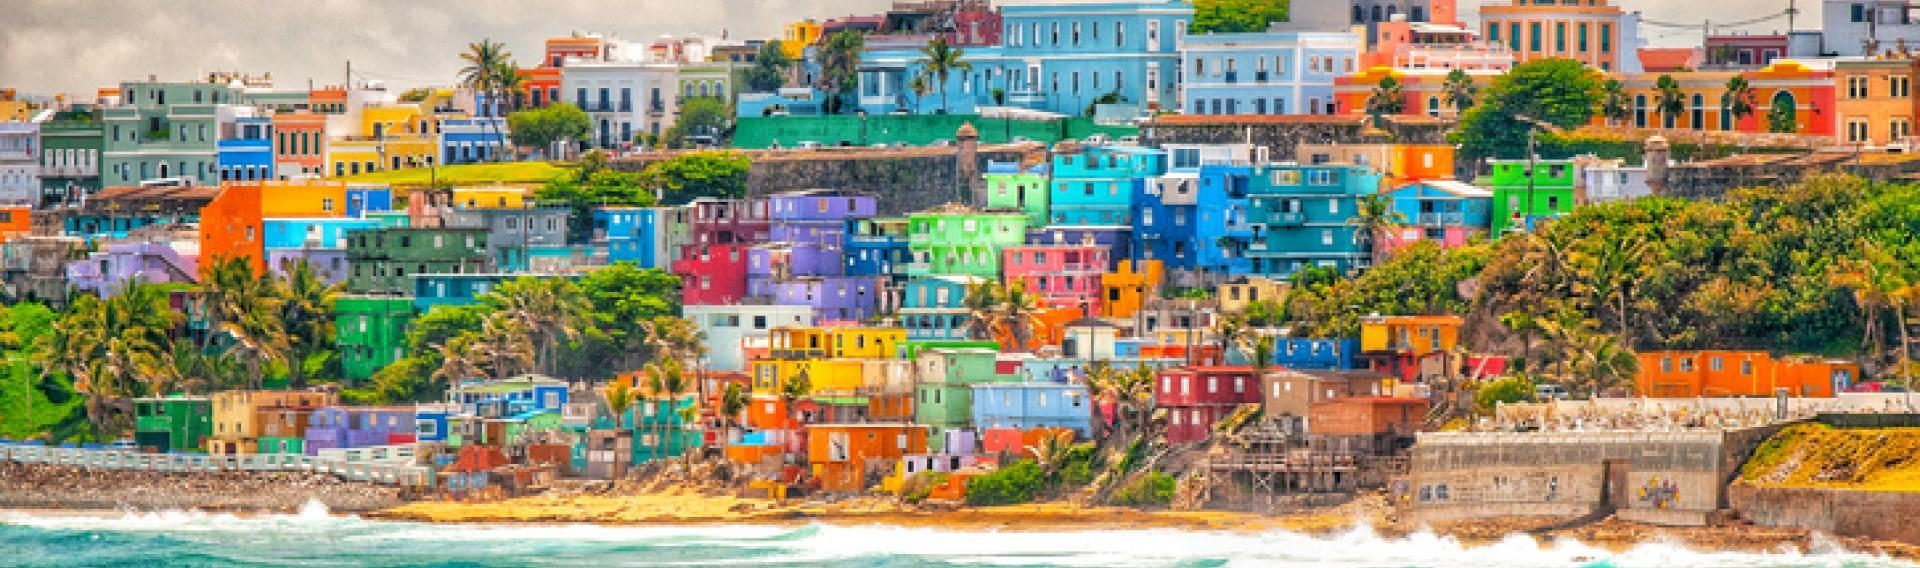 Puerto Rico  for CME, CLE, and CE